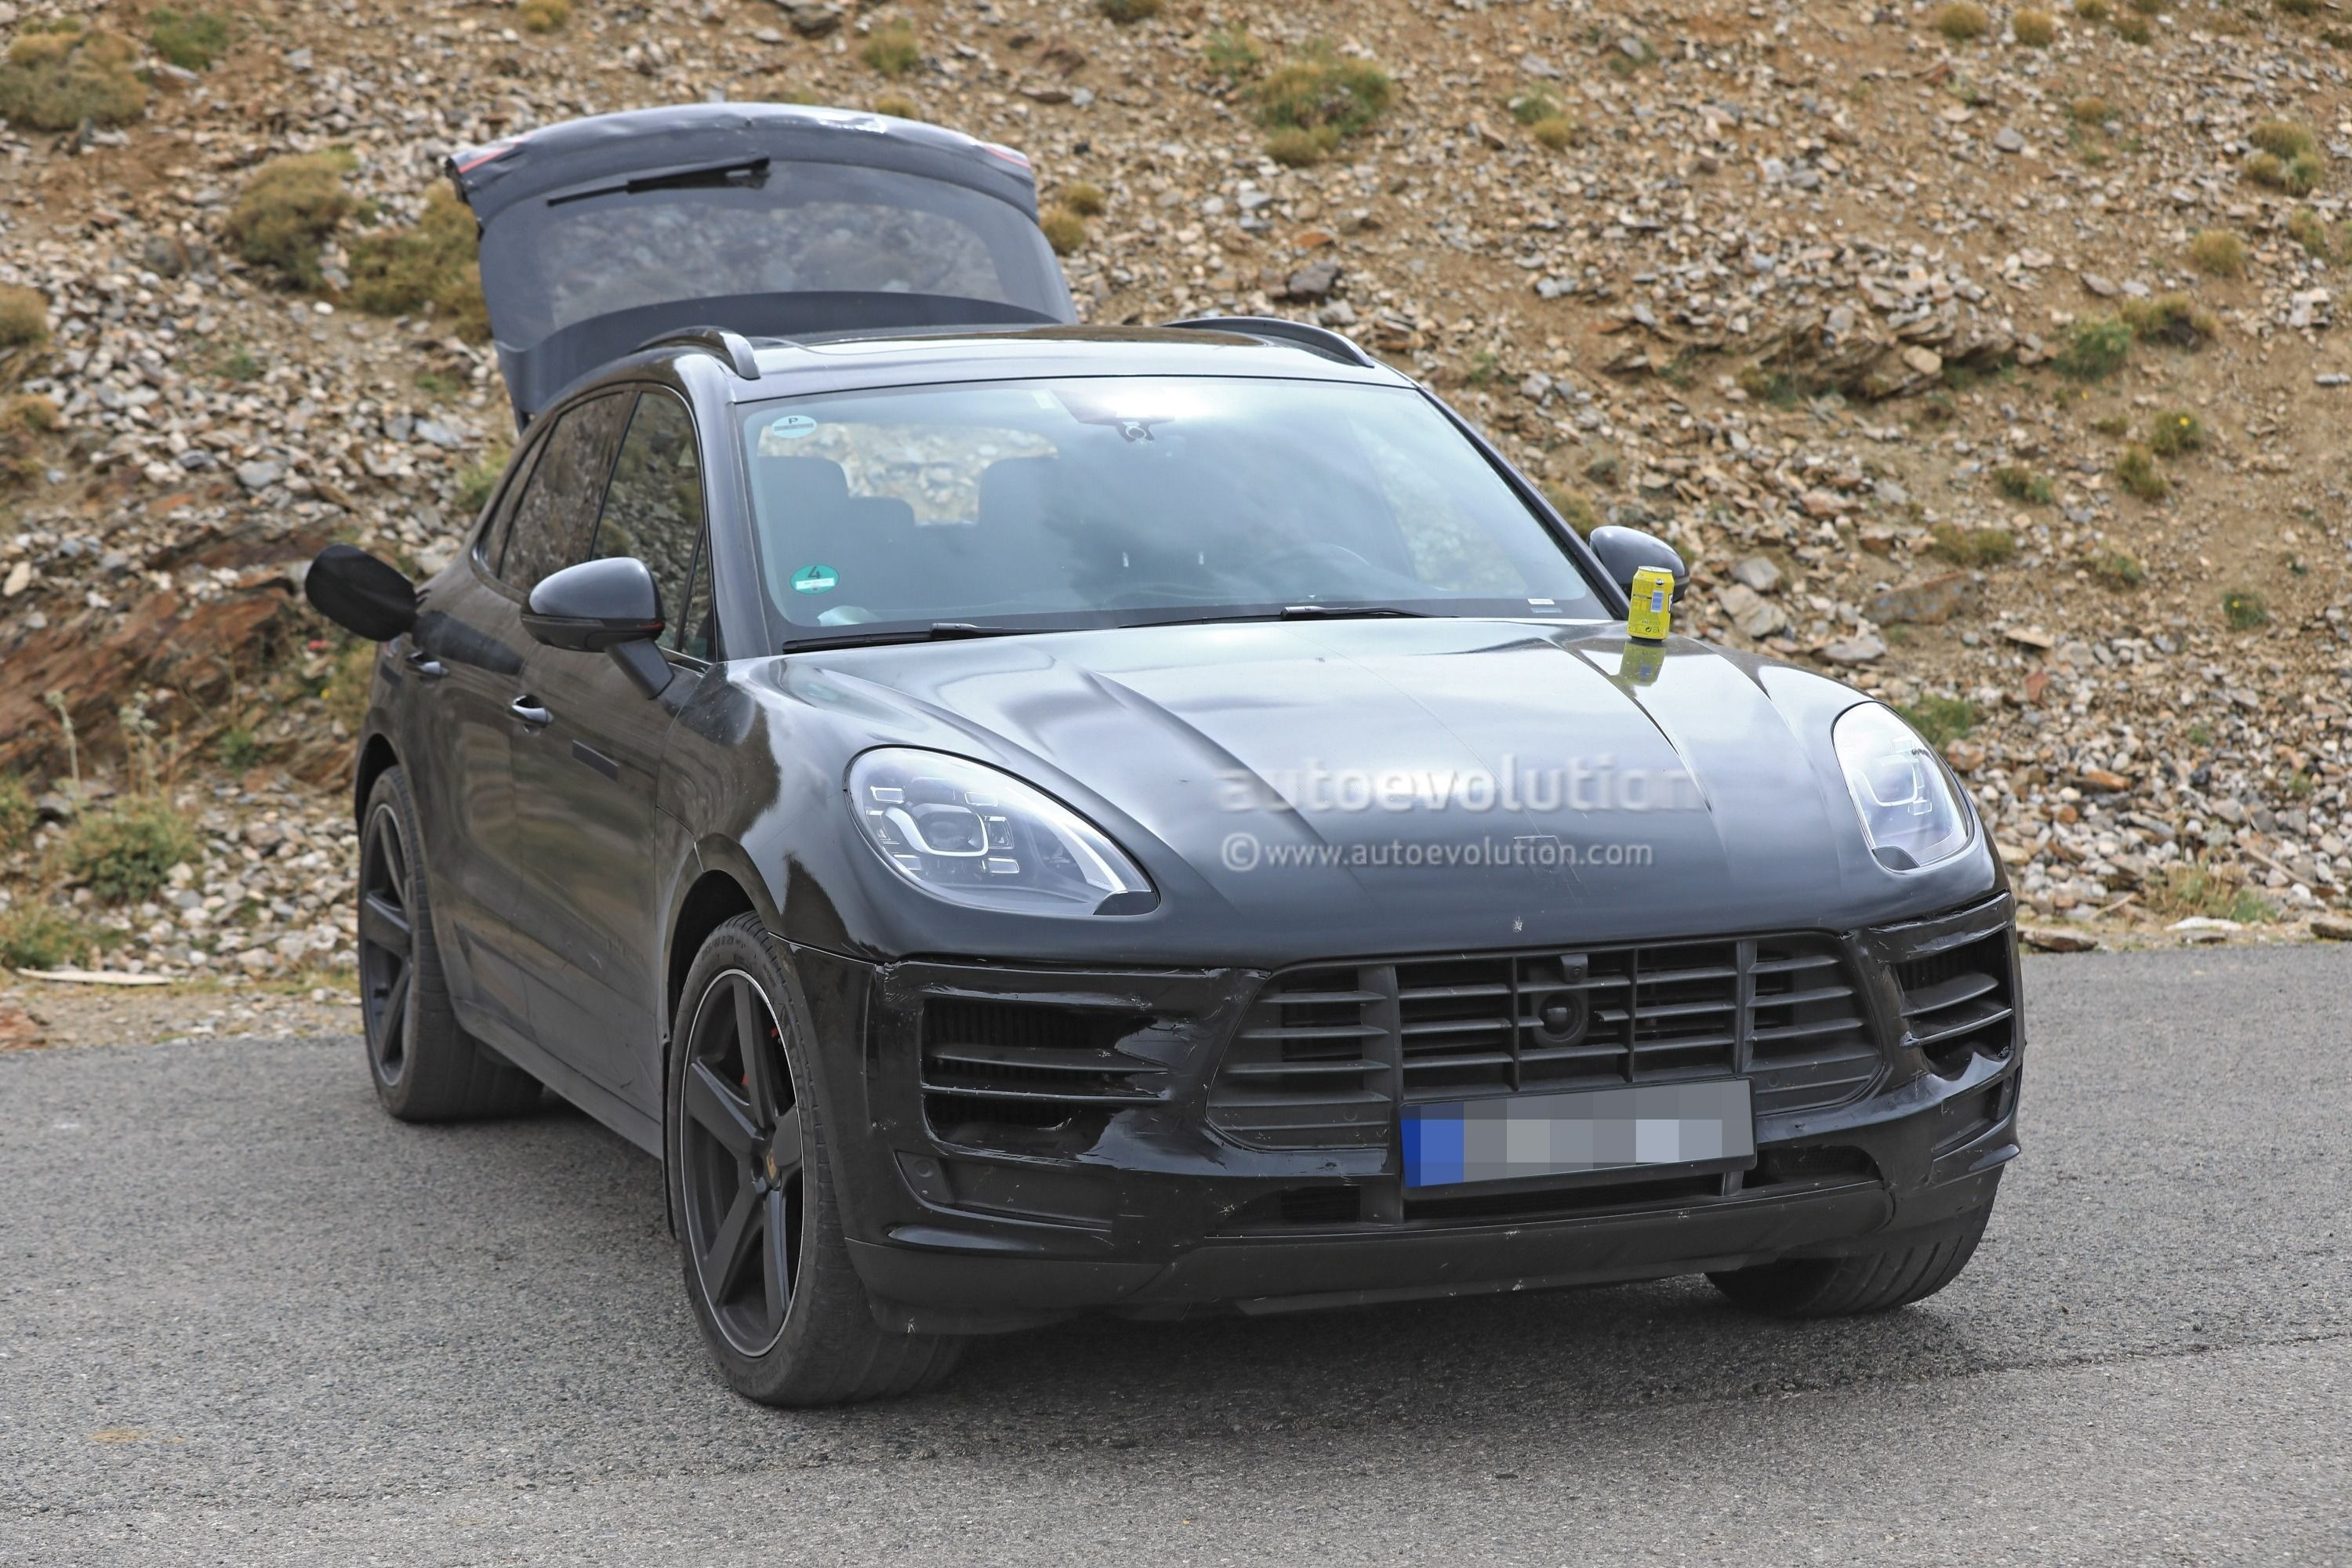 Spyshots 2019 Porsche Macan Prototype Poses For The